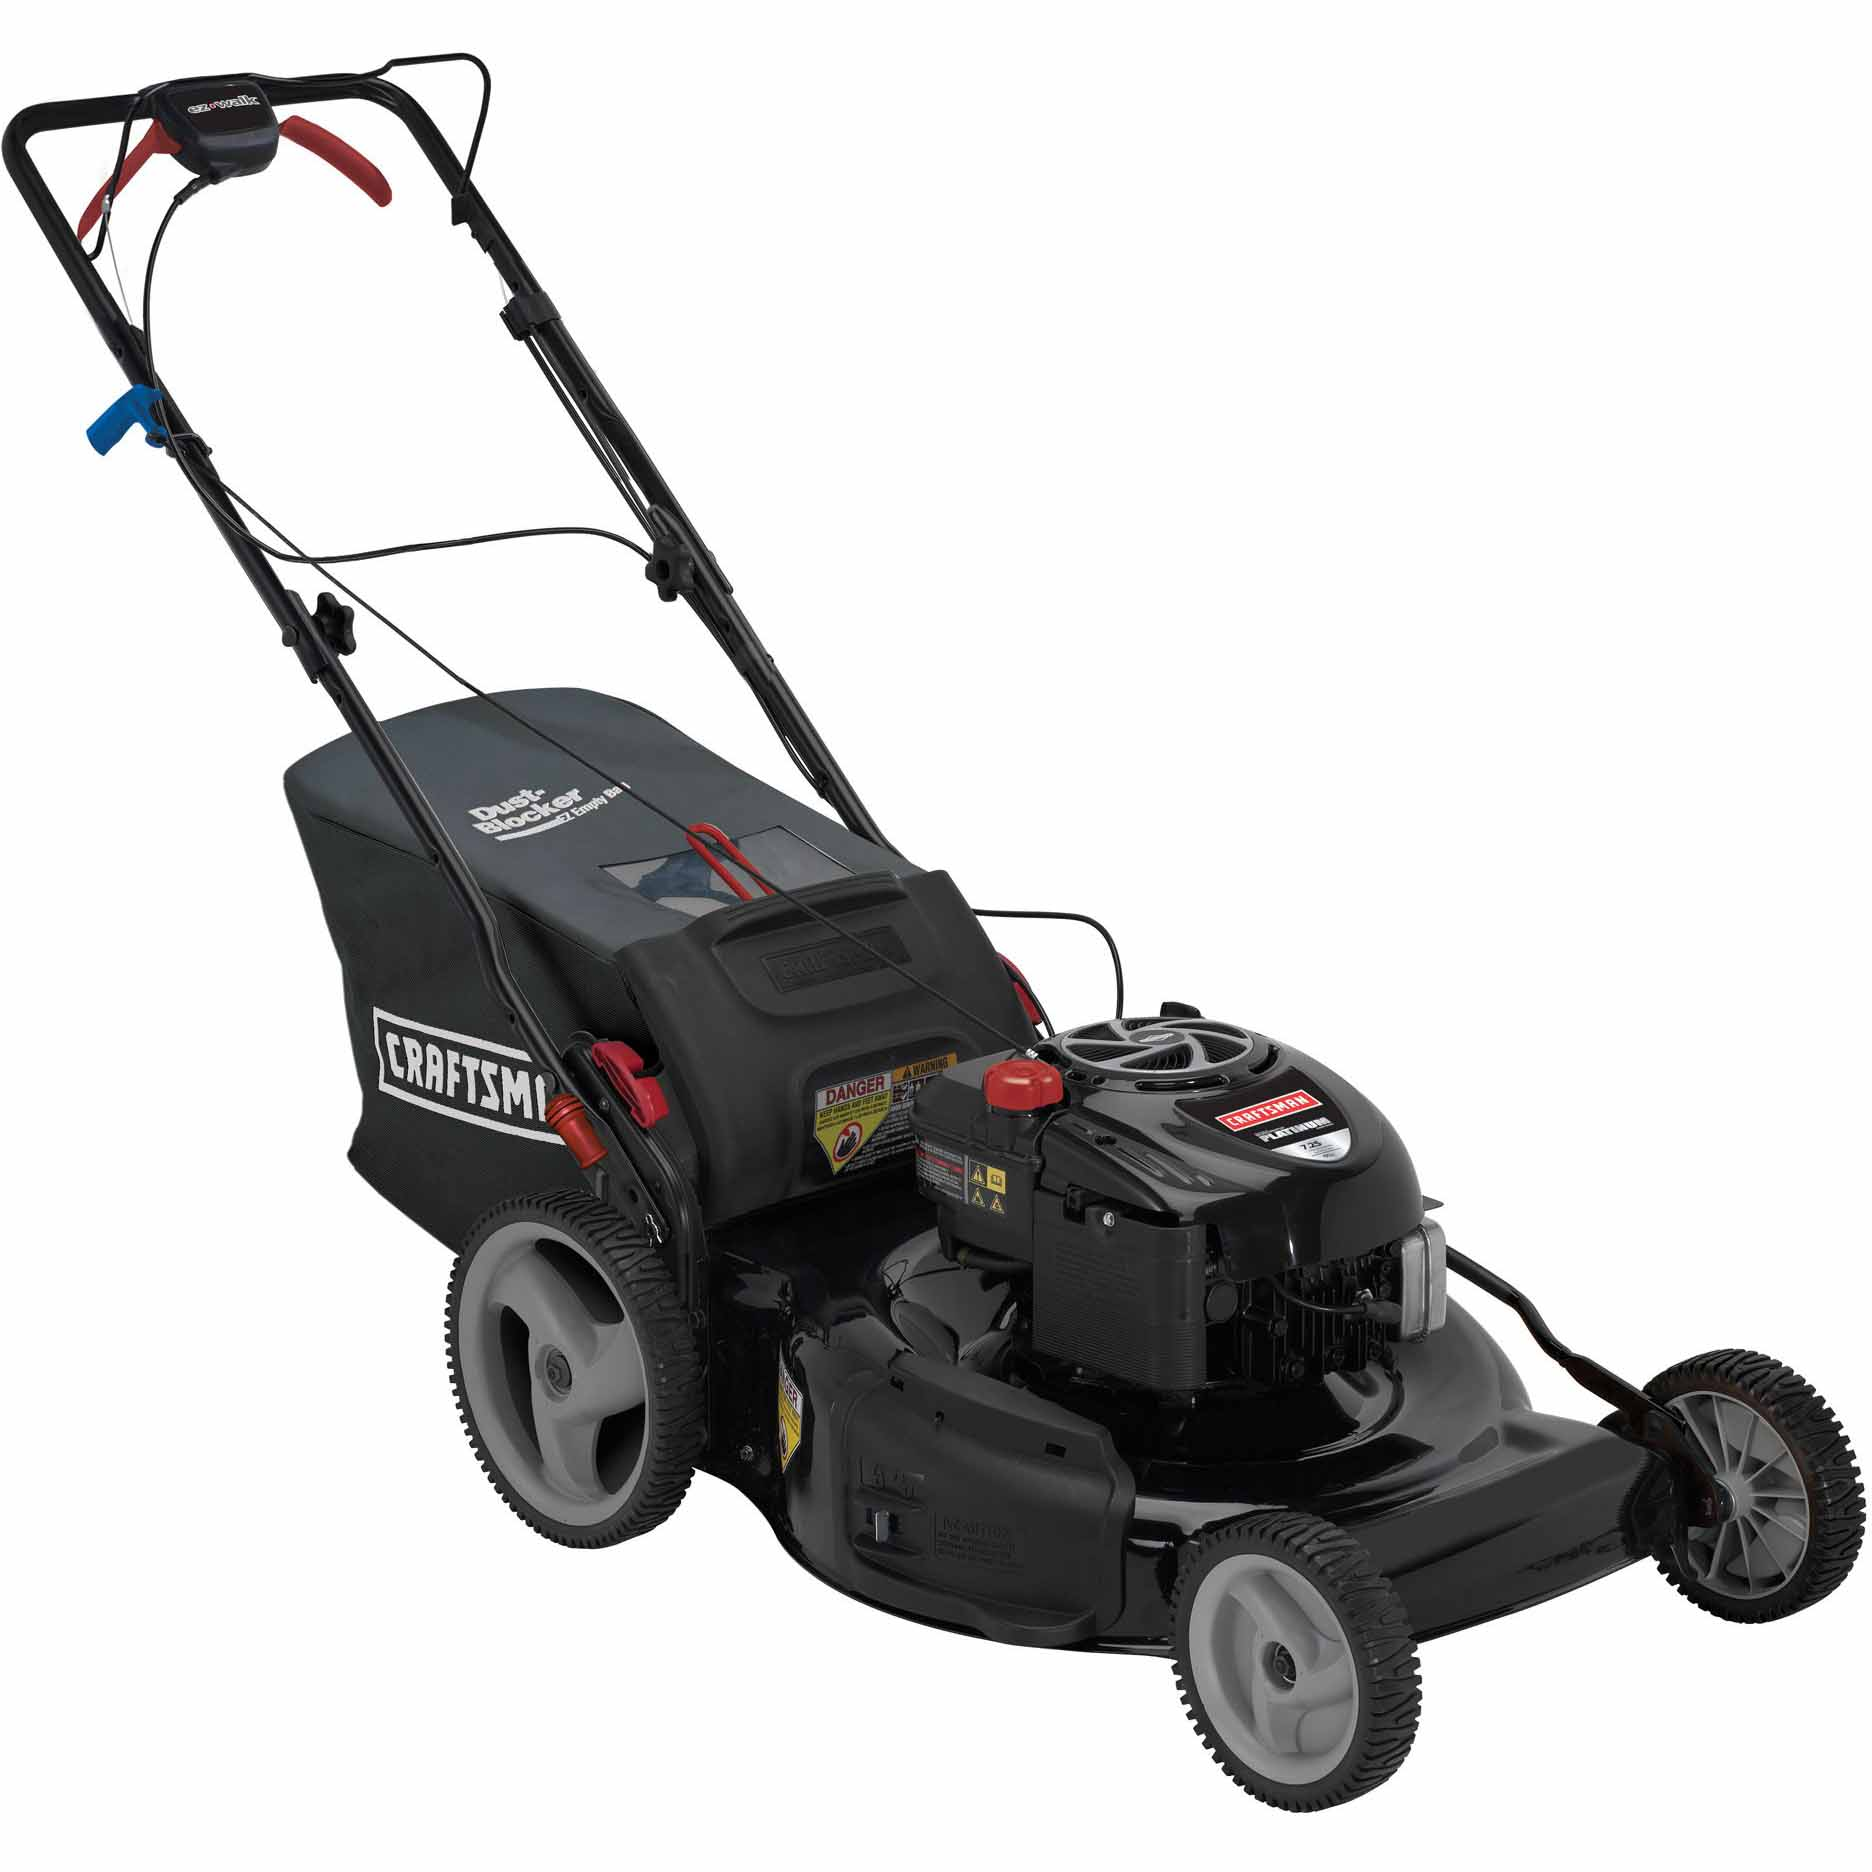 "Craftsman 190cc* Briggs & Stratton Platinum Engine, 22"" Rear Drive Self-Propelled EZ Lawn Mower"